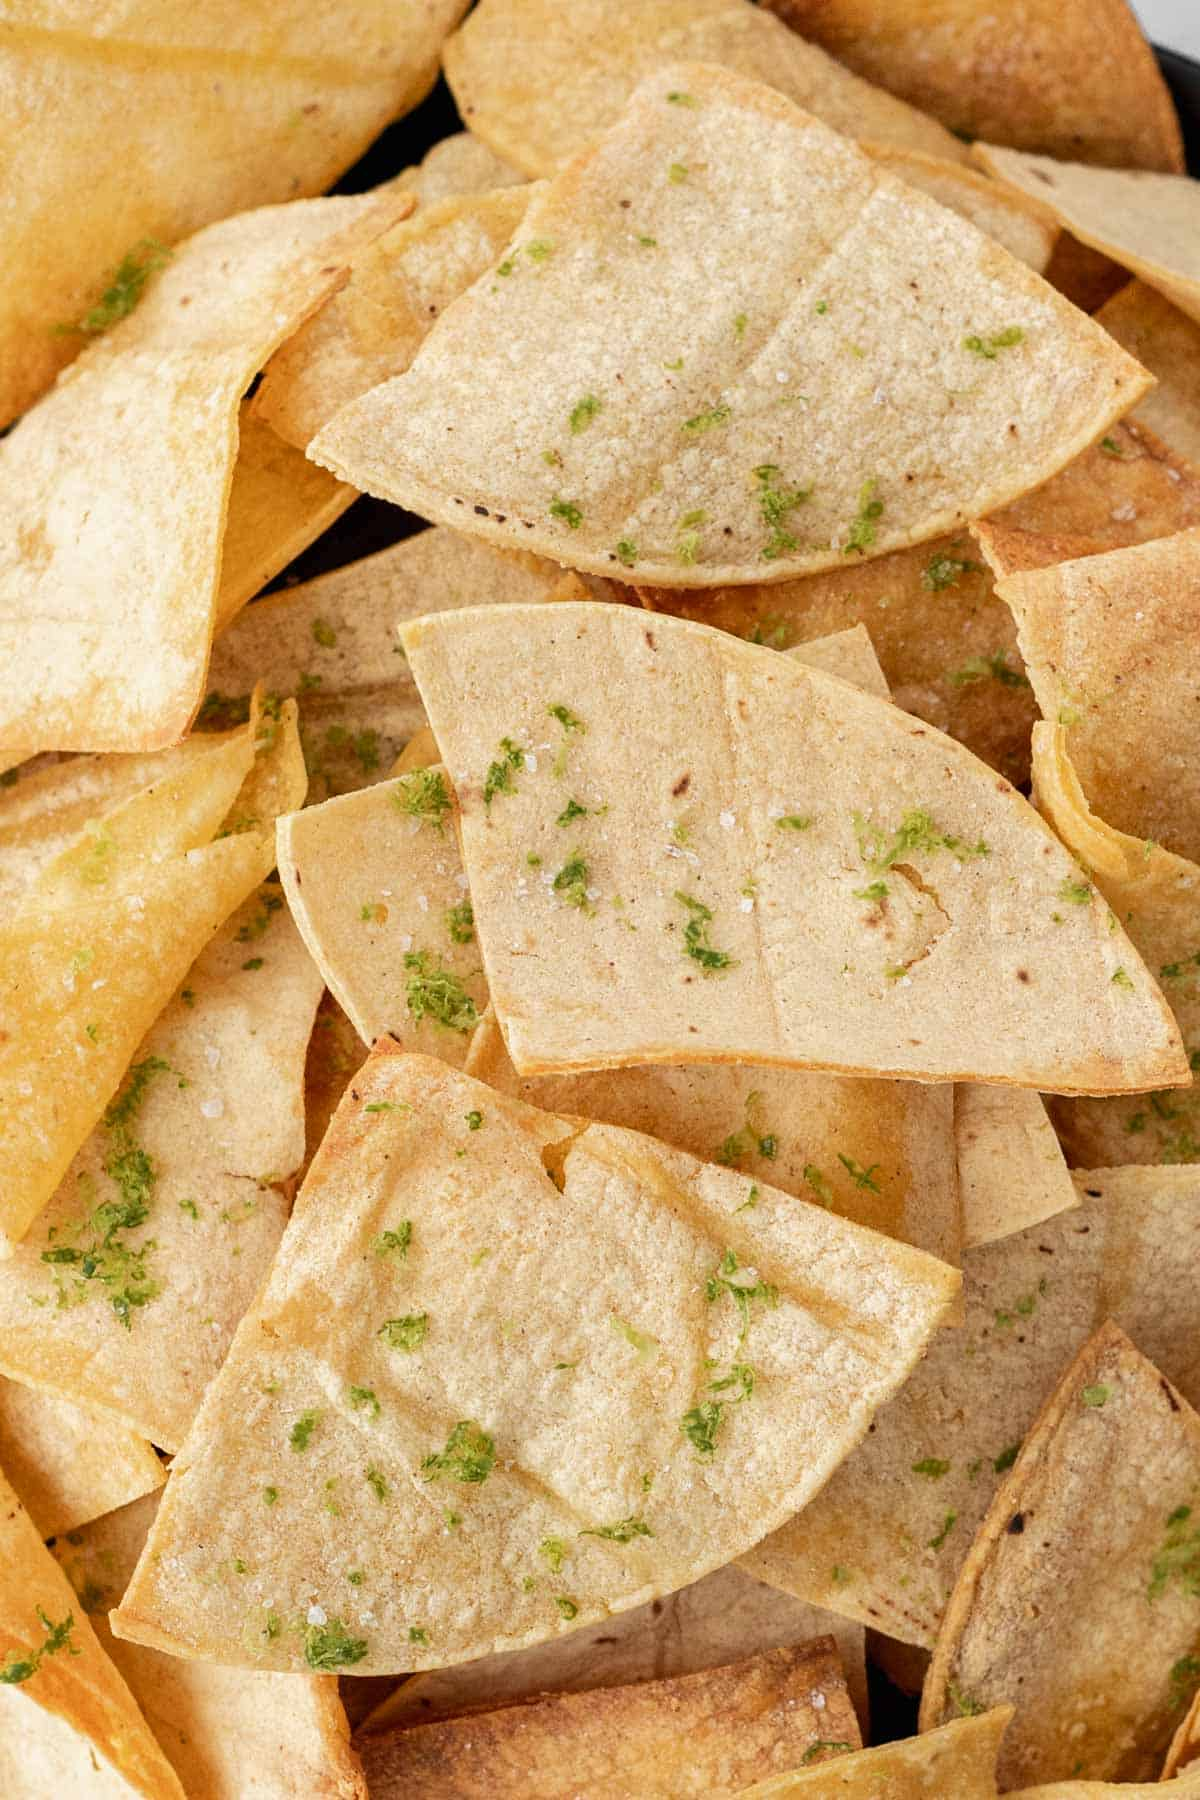 Closeup of air fryer tortilla chips seasoned with sea salt and lime zest.